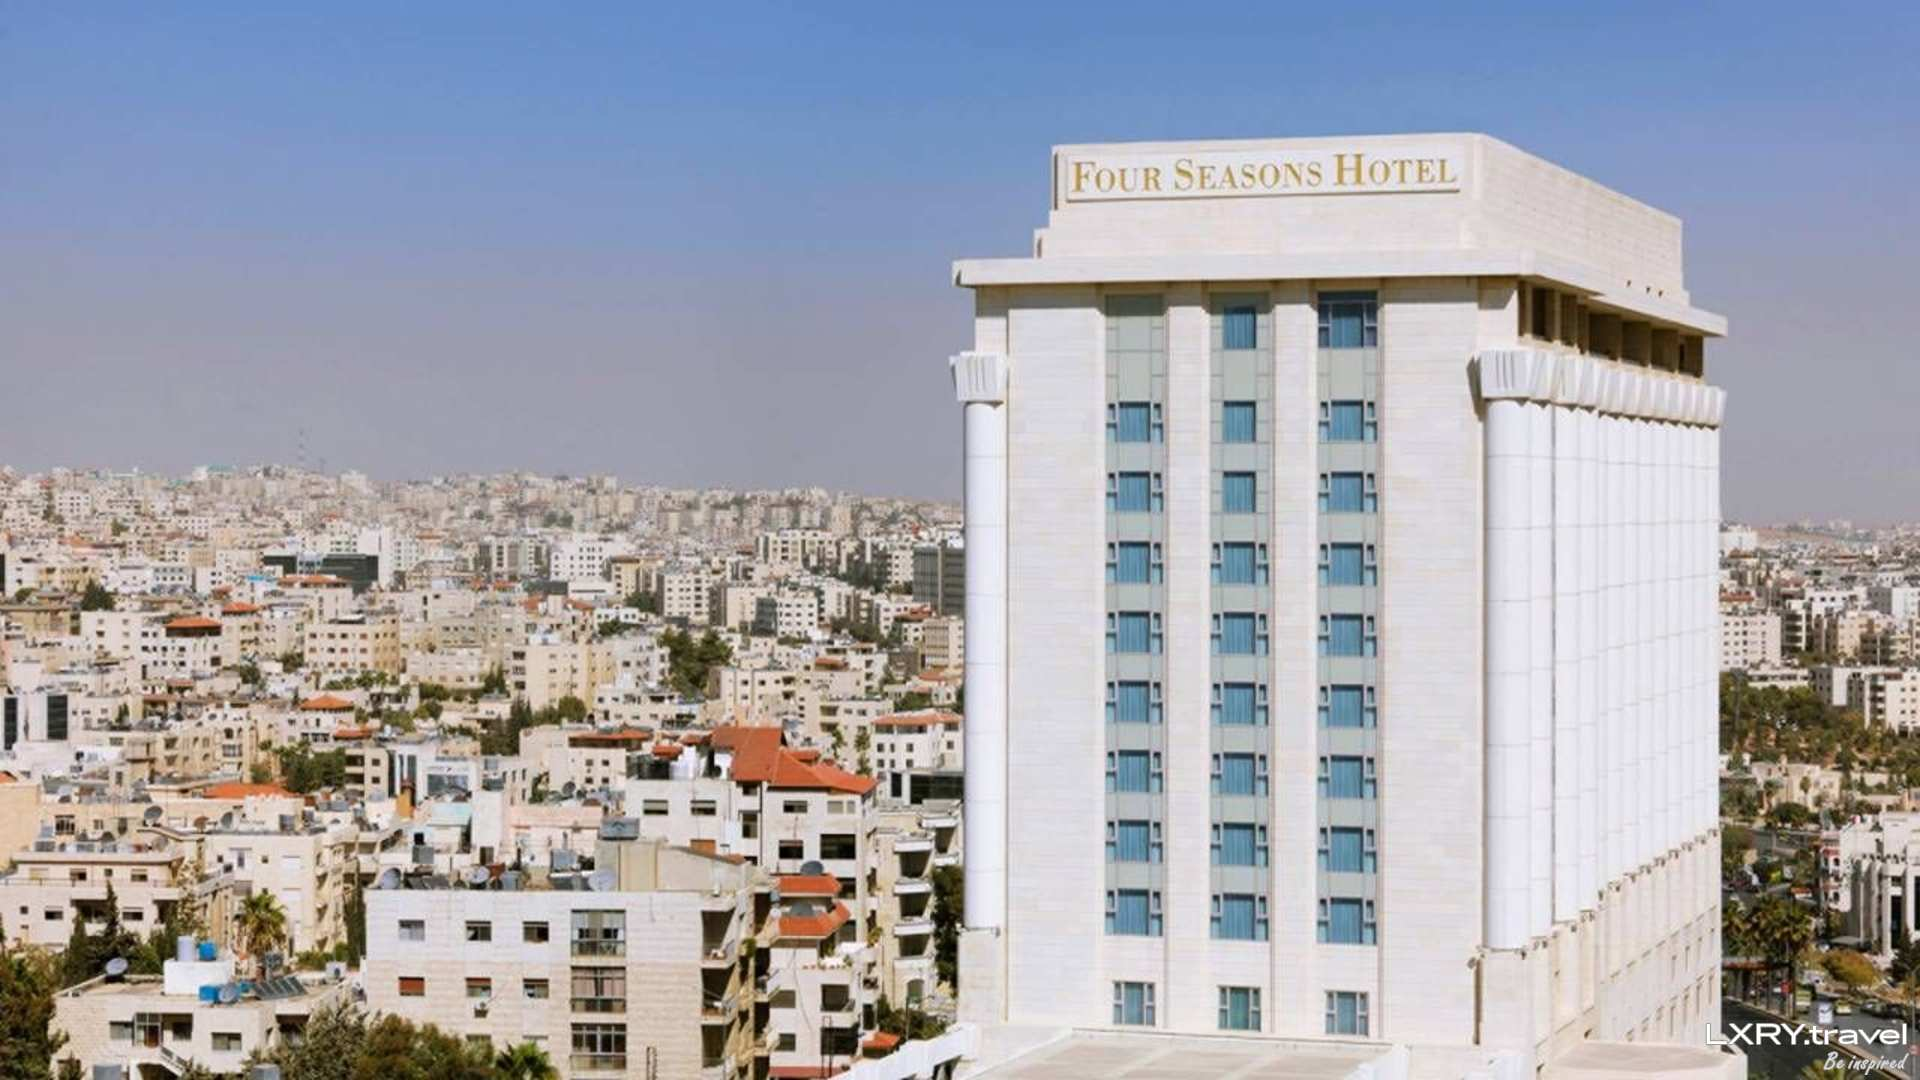 Four Seasons Hotel Amman 1/29